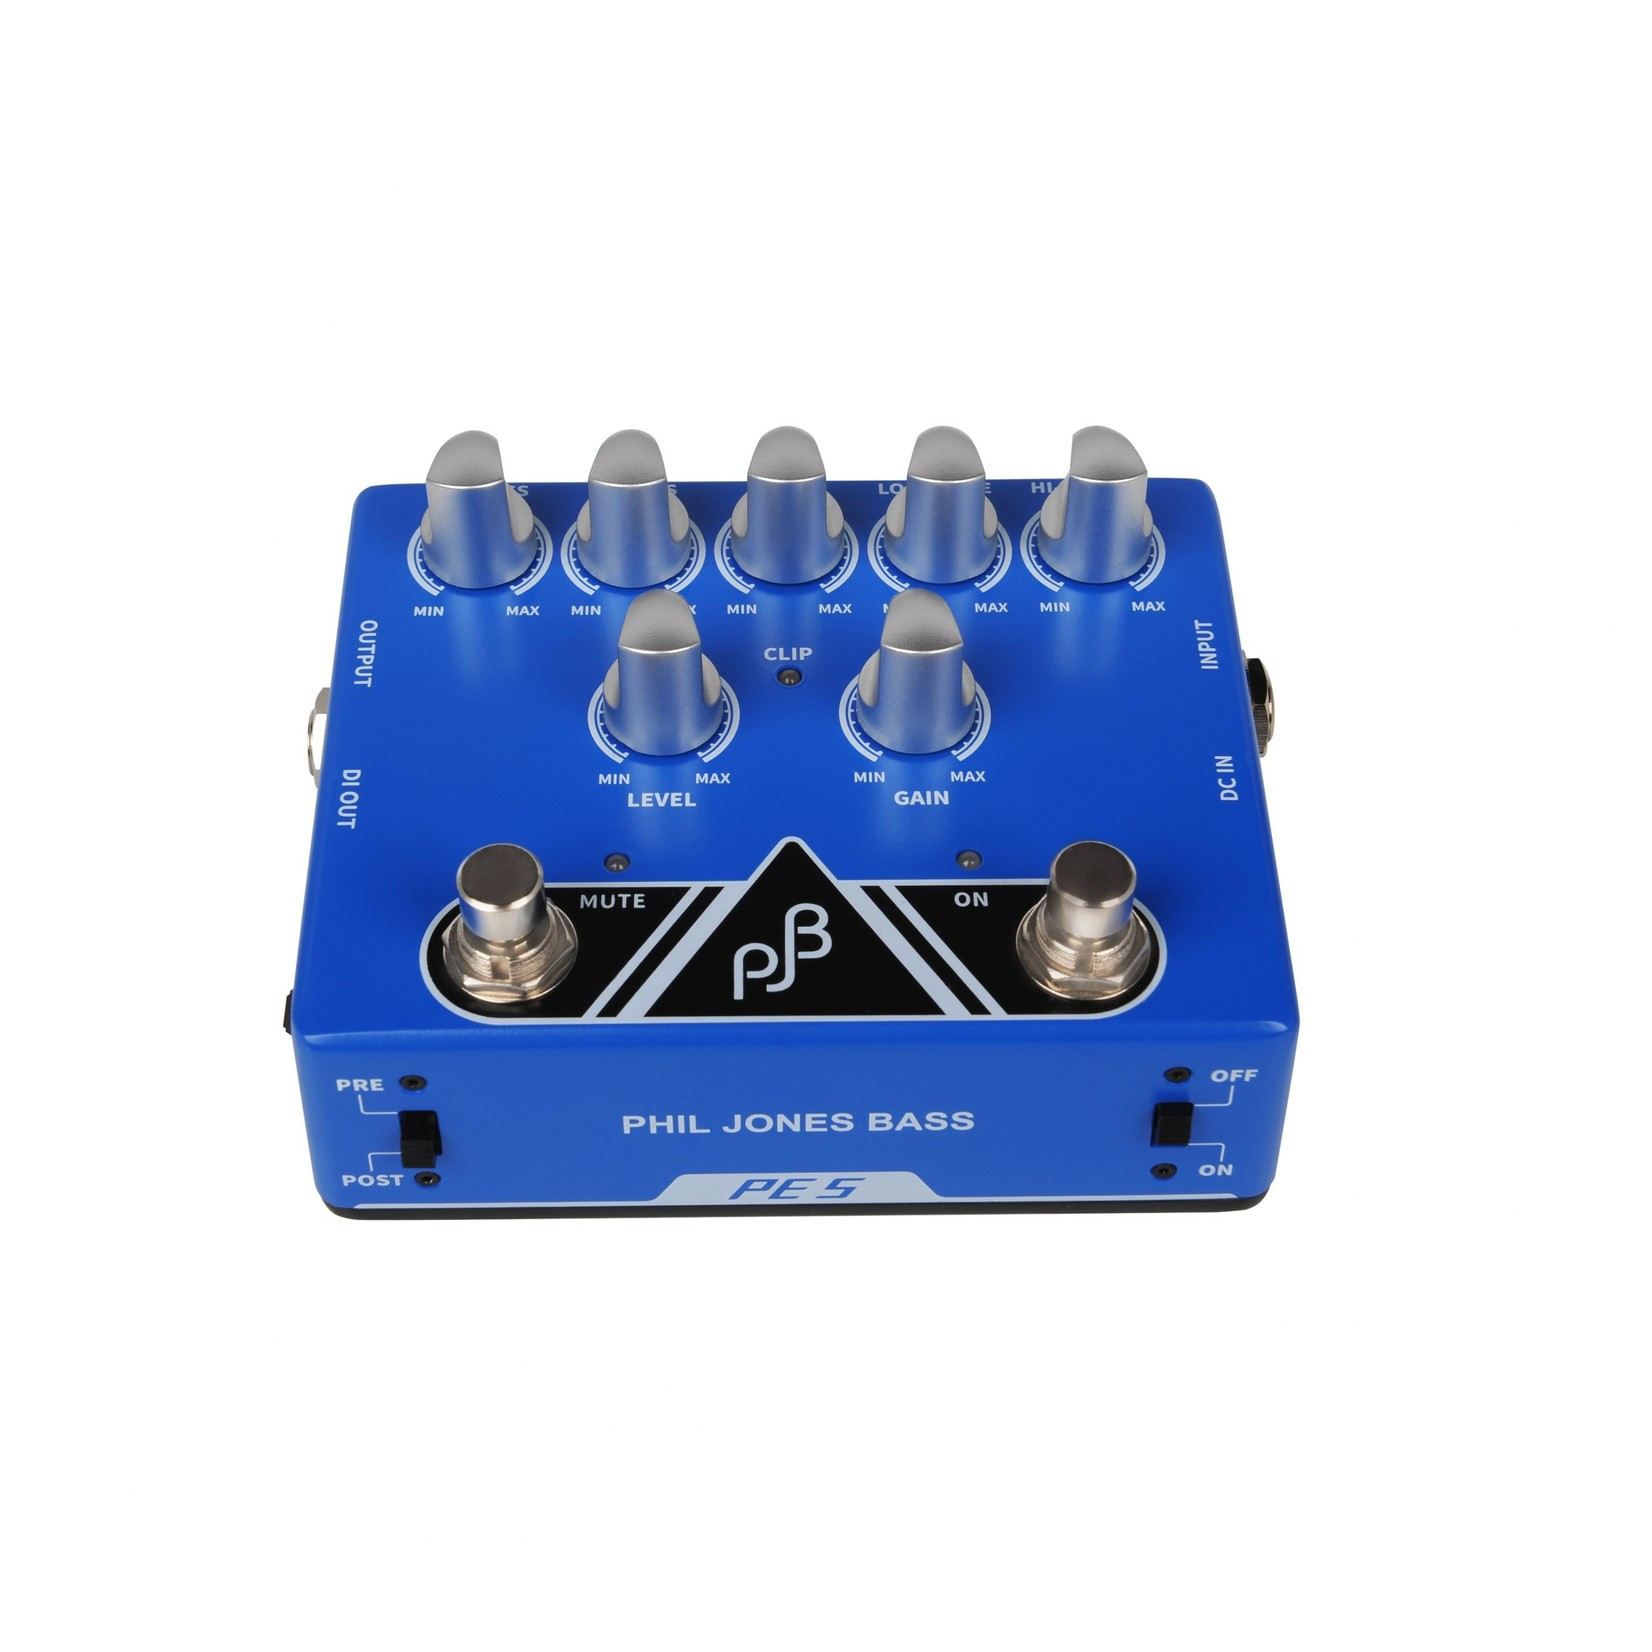 Phil Jones Phil Jones Bass PE-5 Pedal,  5-Band EQ Pre-Amp, Direct Box, Signal Booster